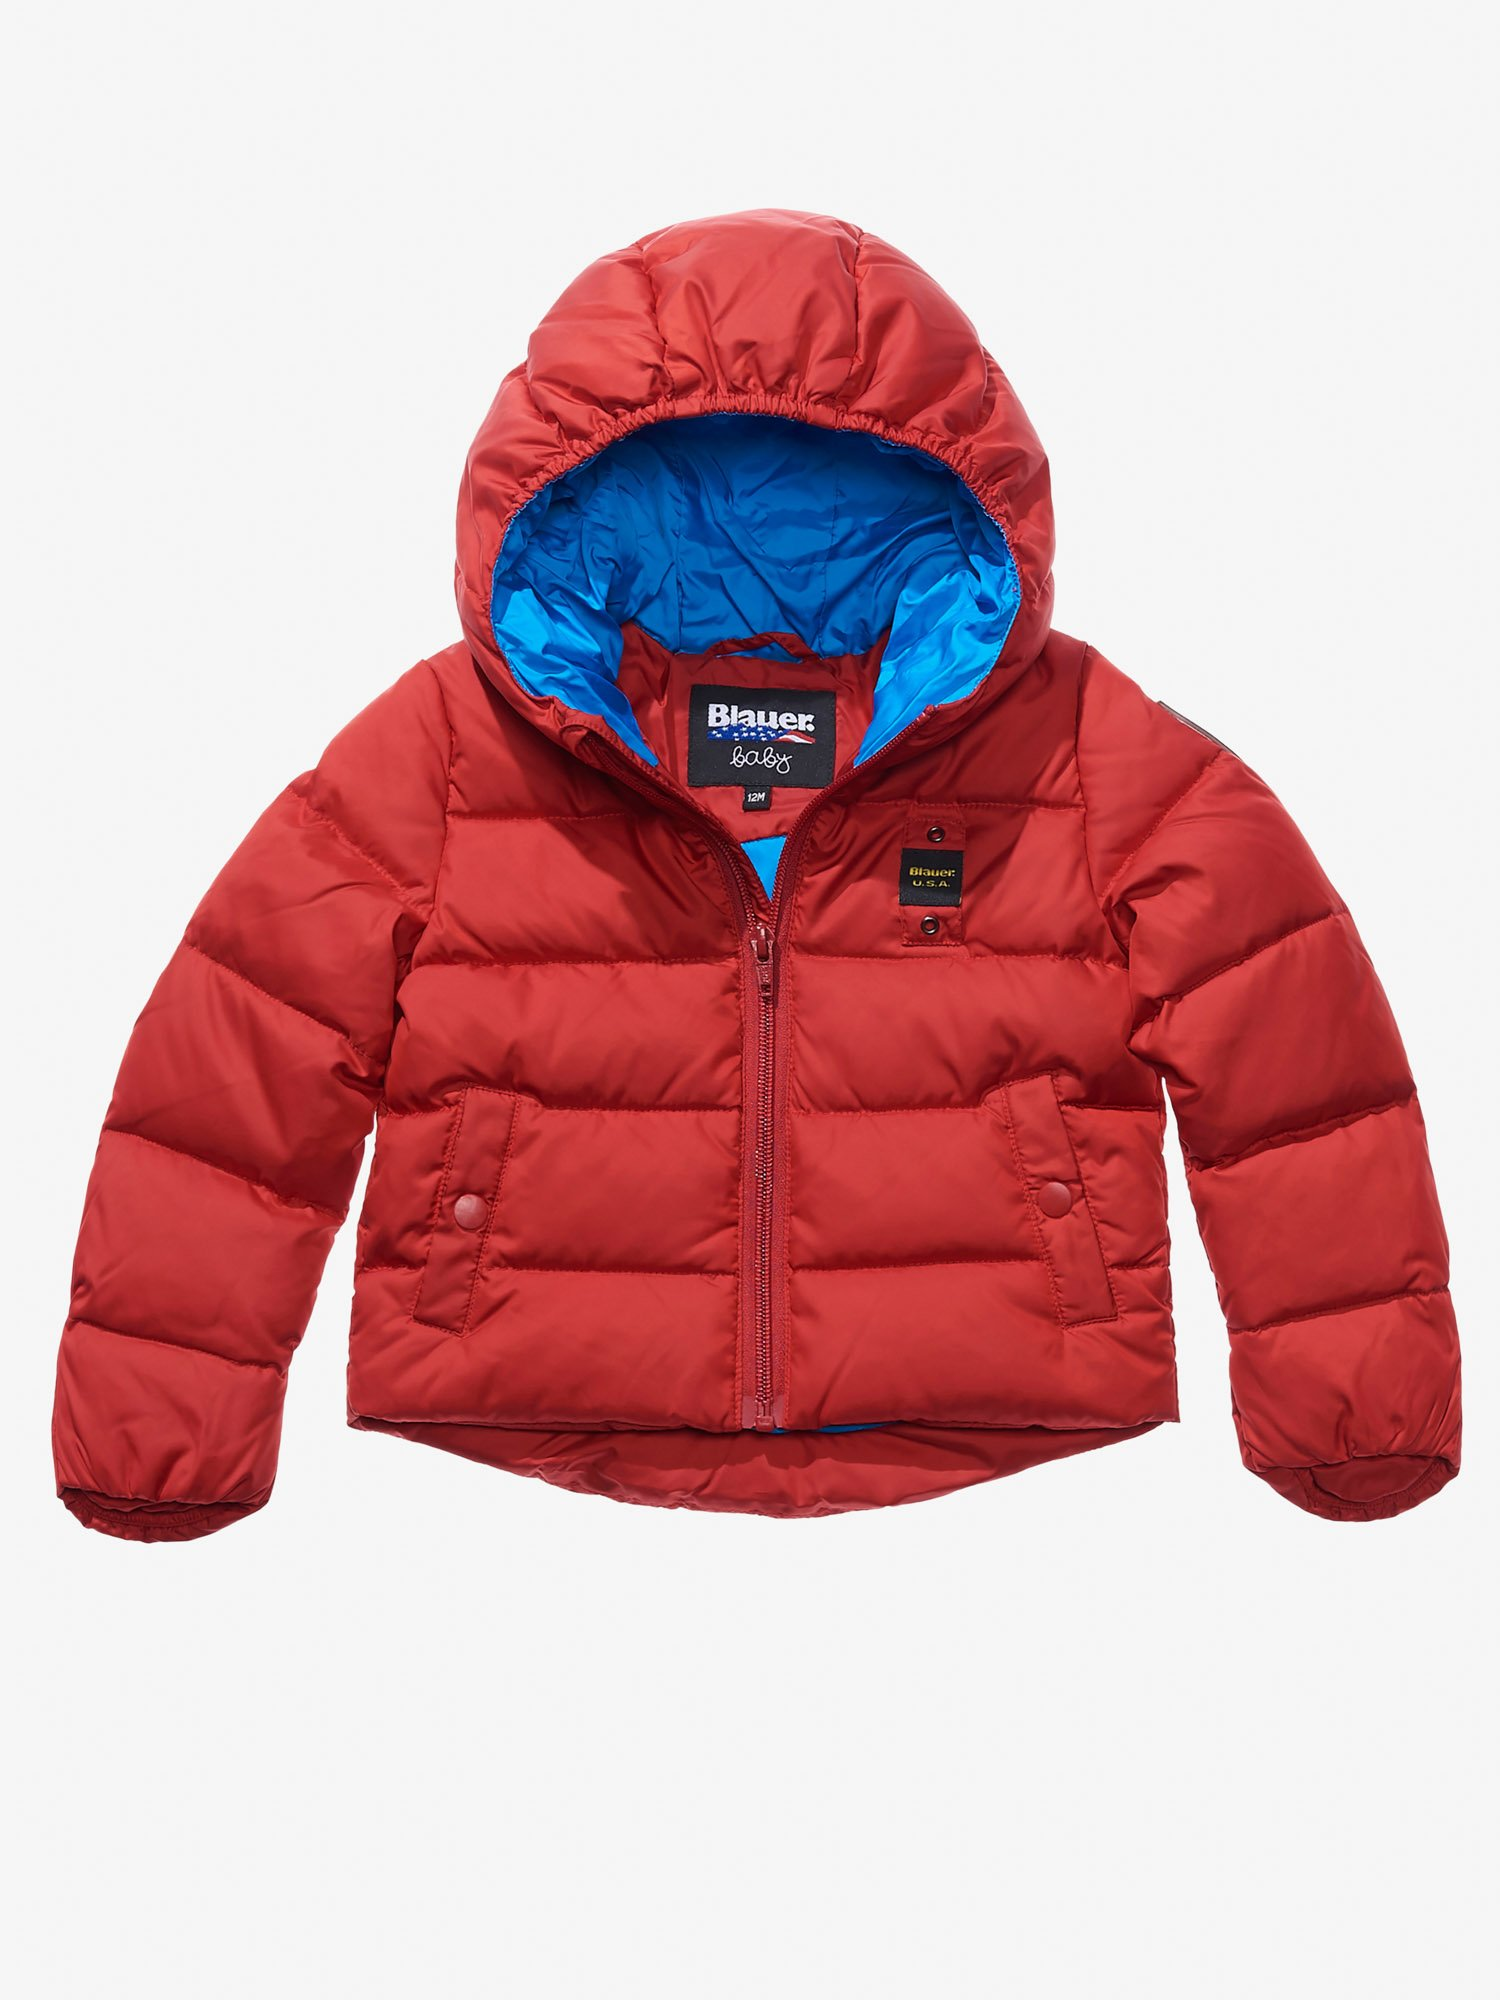 BRANDO BABY BOY DOWN JACKET - Blauer